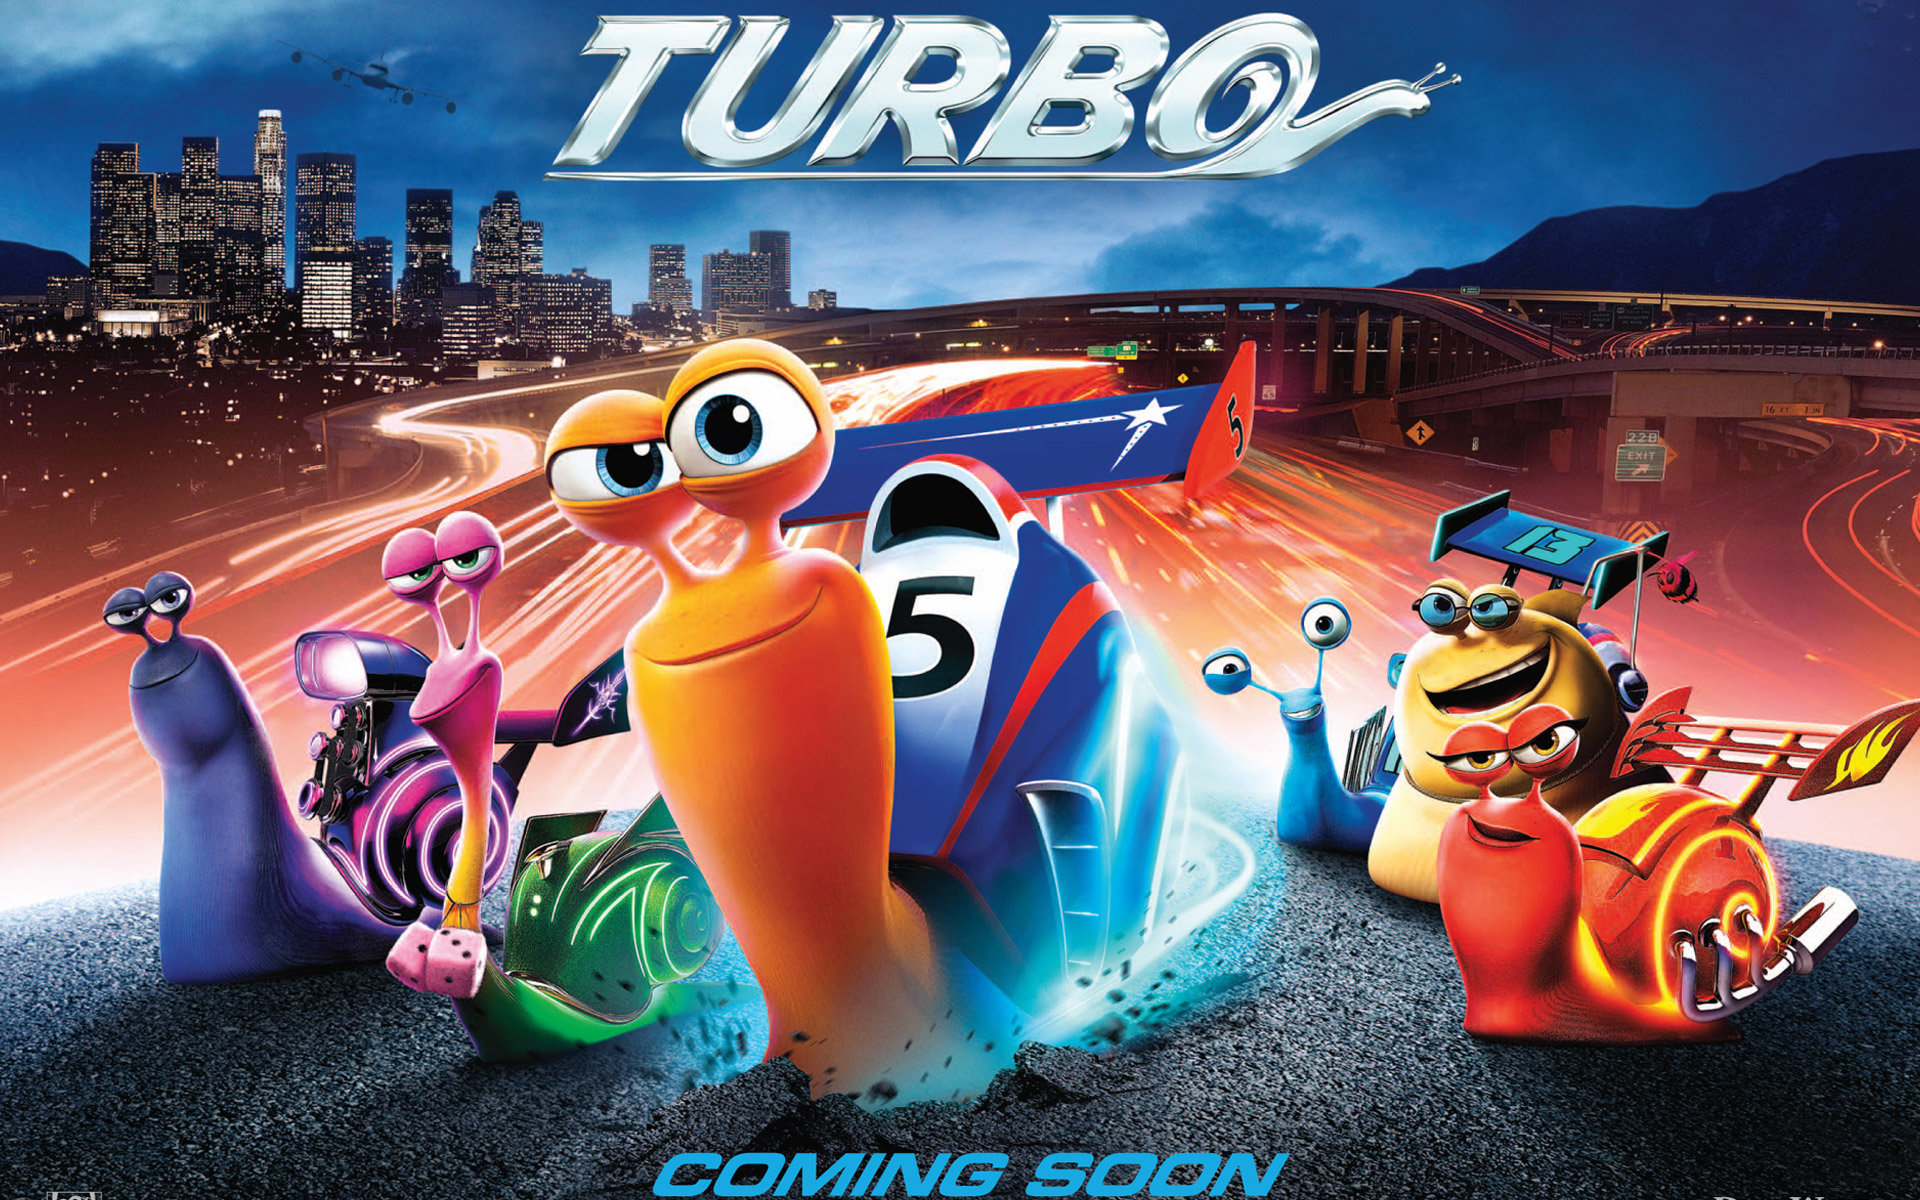 Turbo wallpapers 1920x1200 desktop backgrounds free turbo high quality wallpaper id446990 for hd 1920x1200 pc voltagebd Images